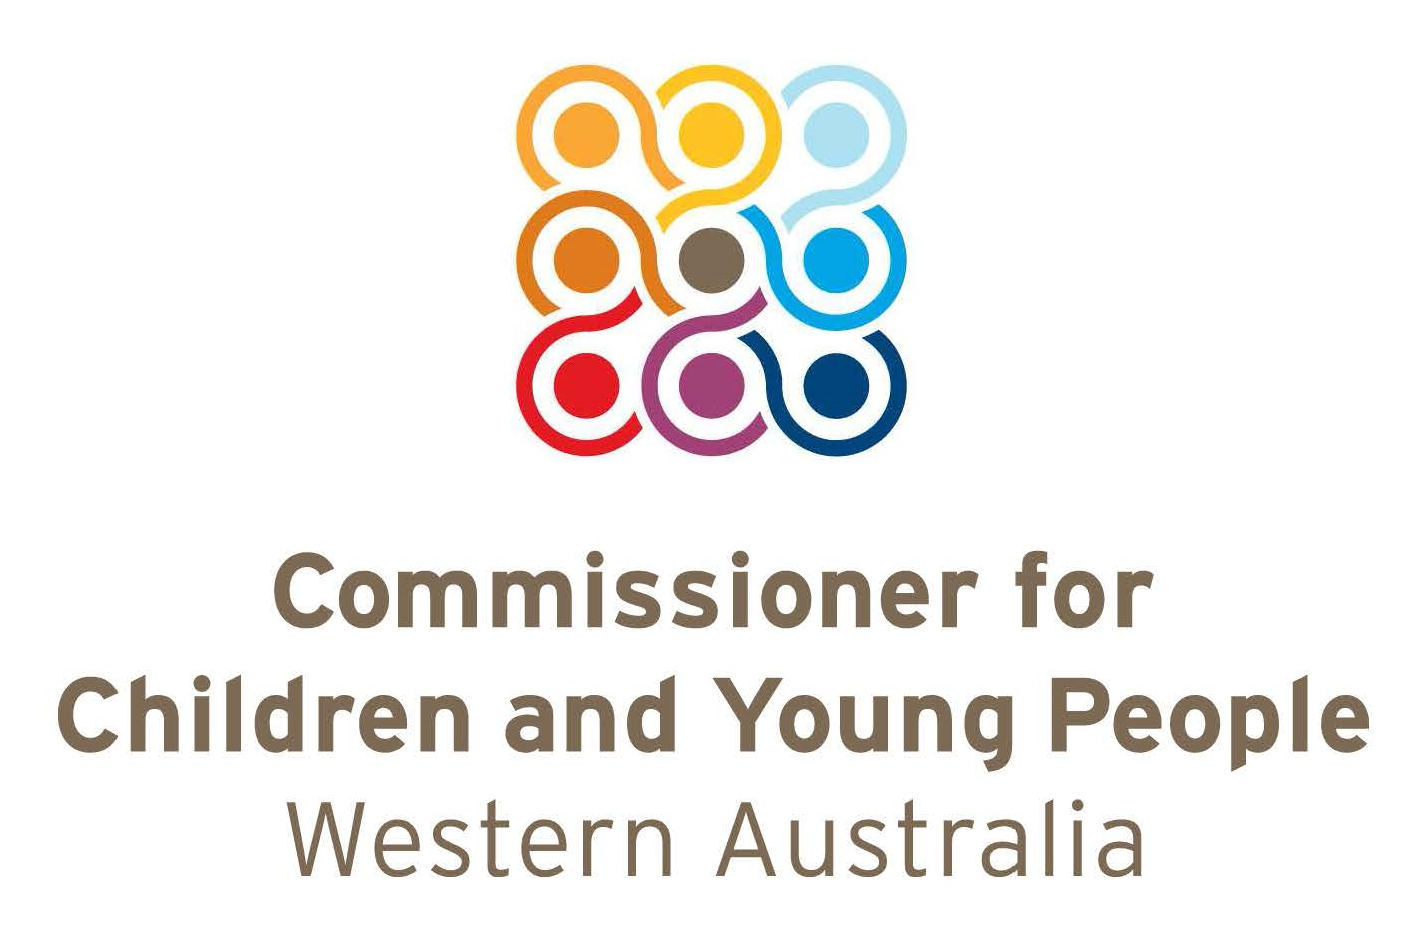 Commissioner for Children and Young People